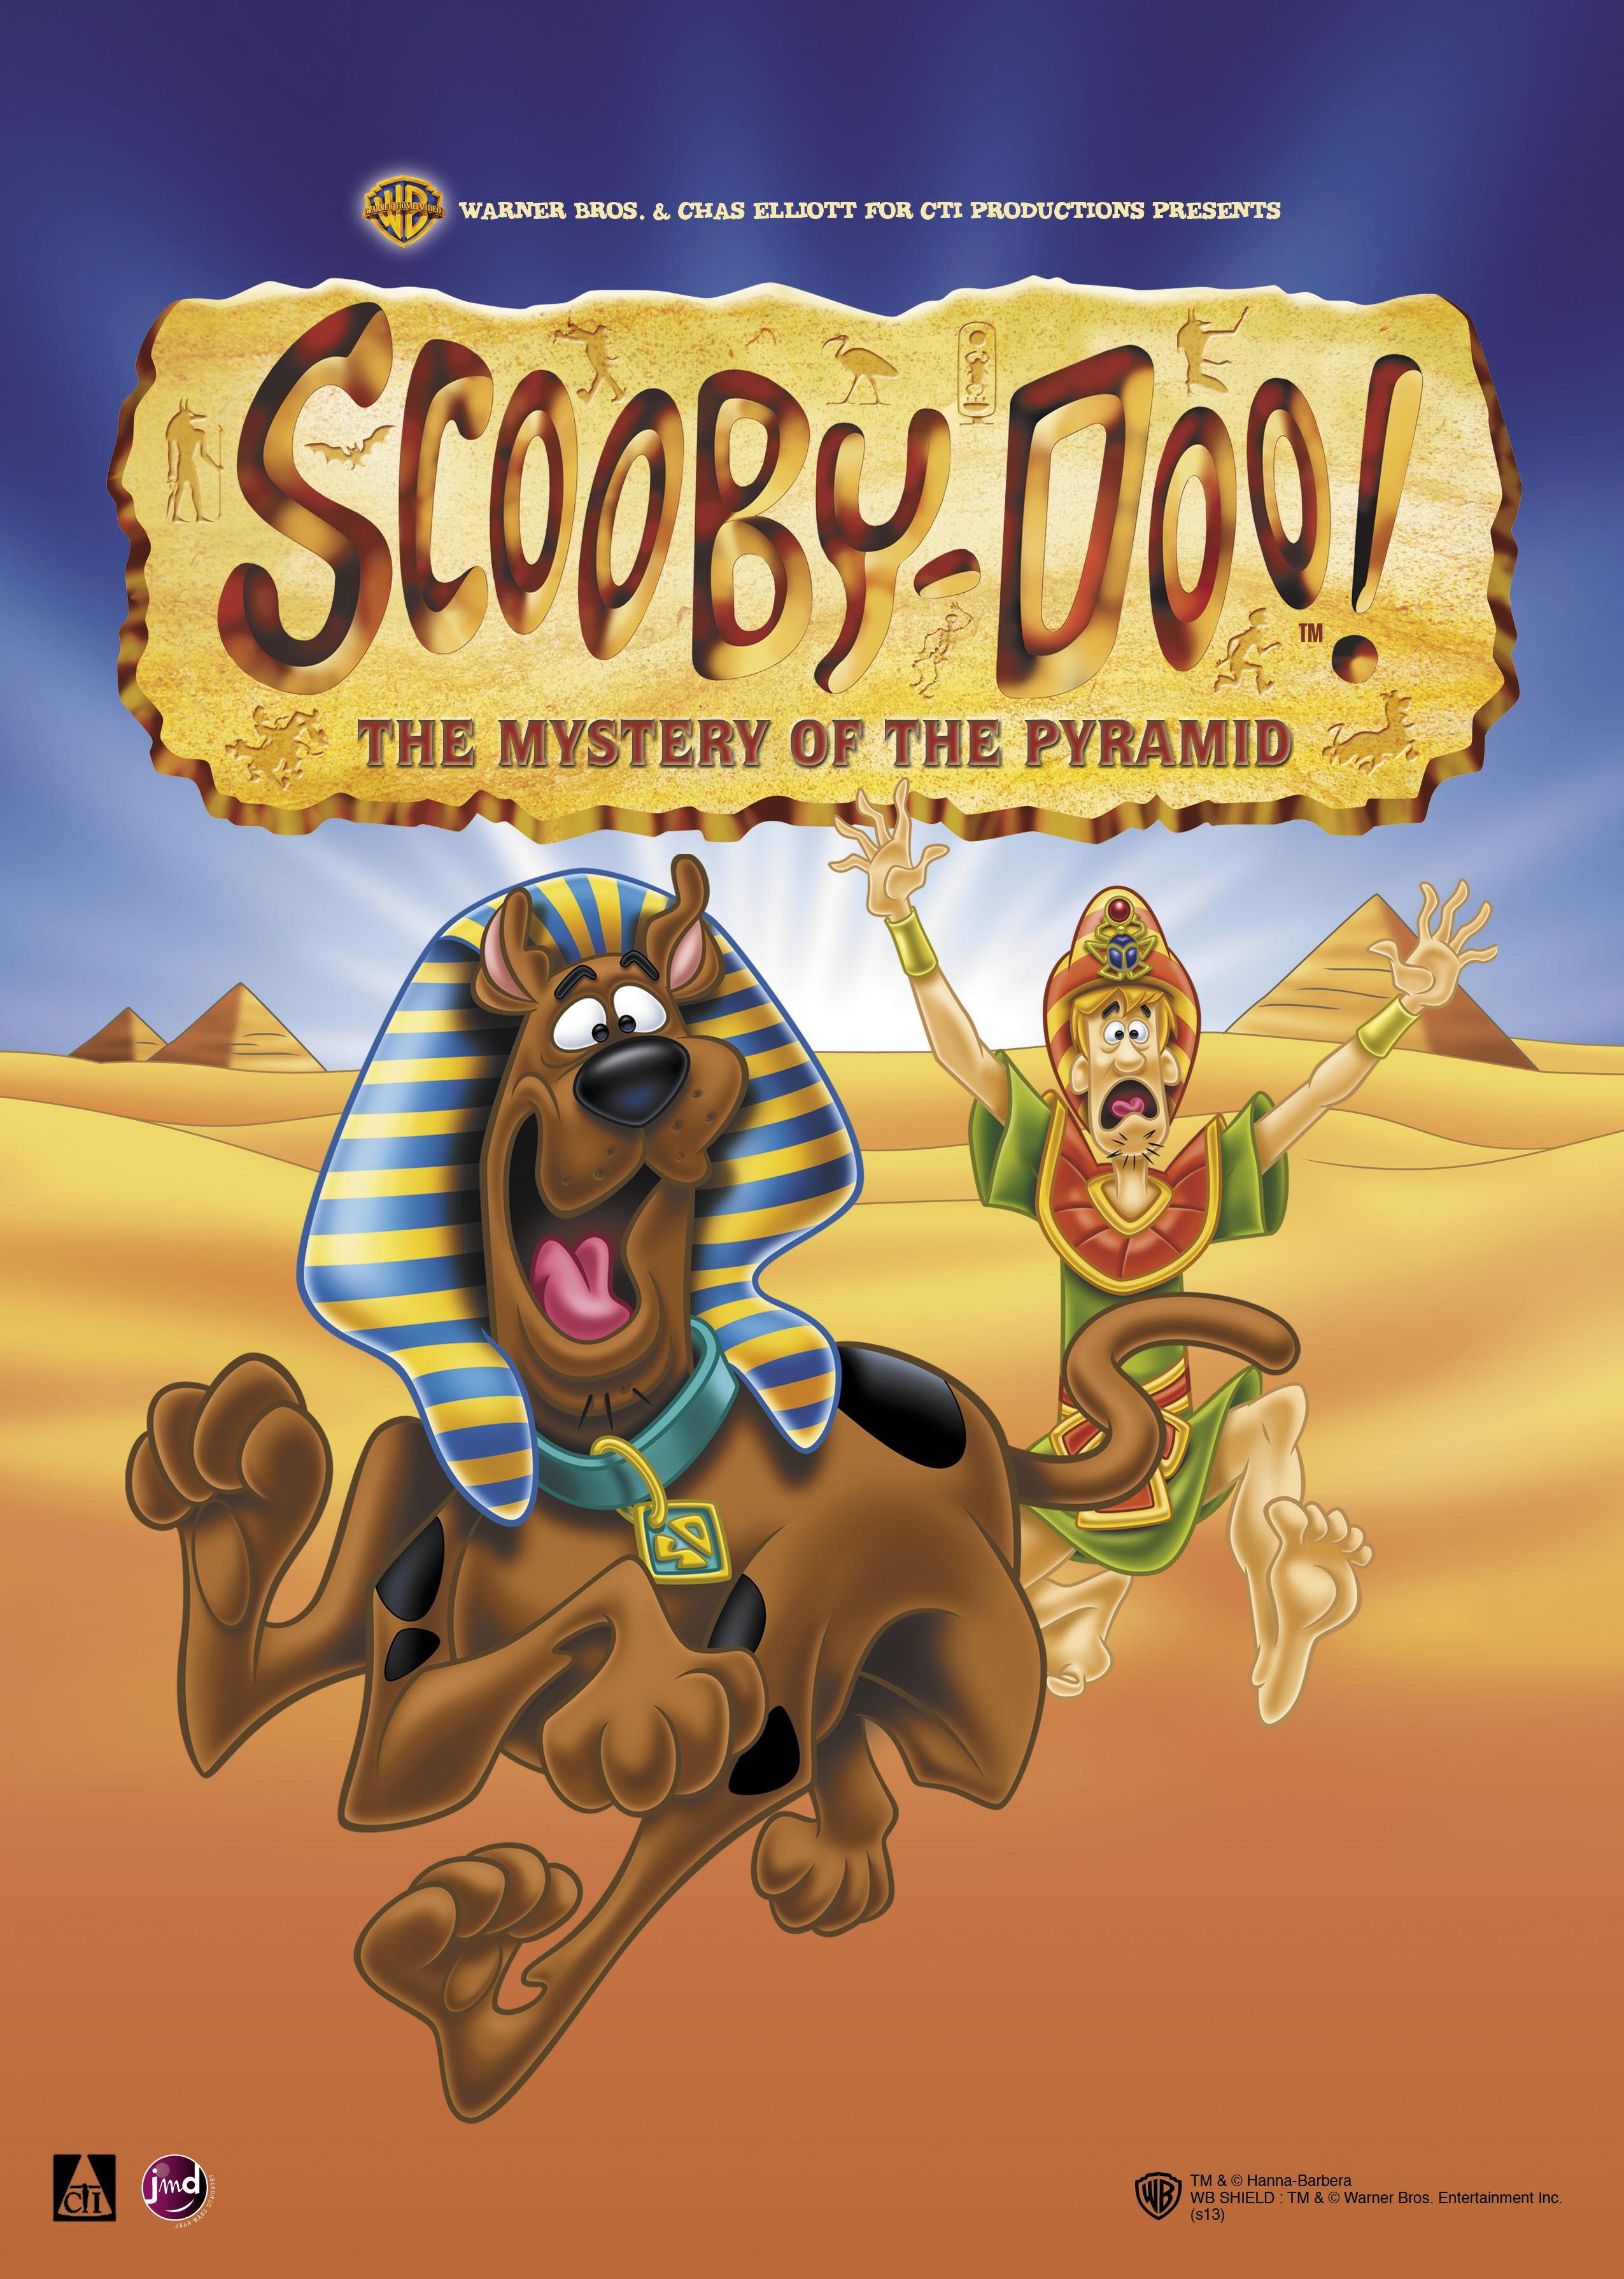 Scooby Doo Daphne And Shaggy Win a Family Ticket to...